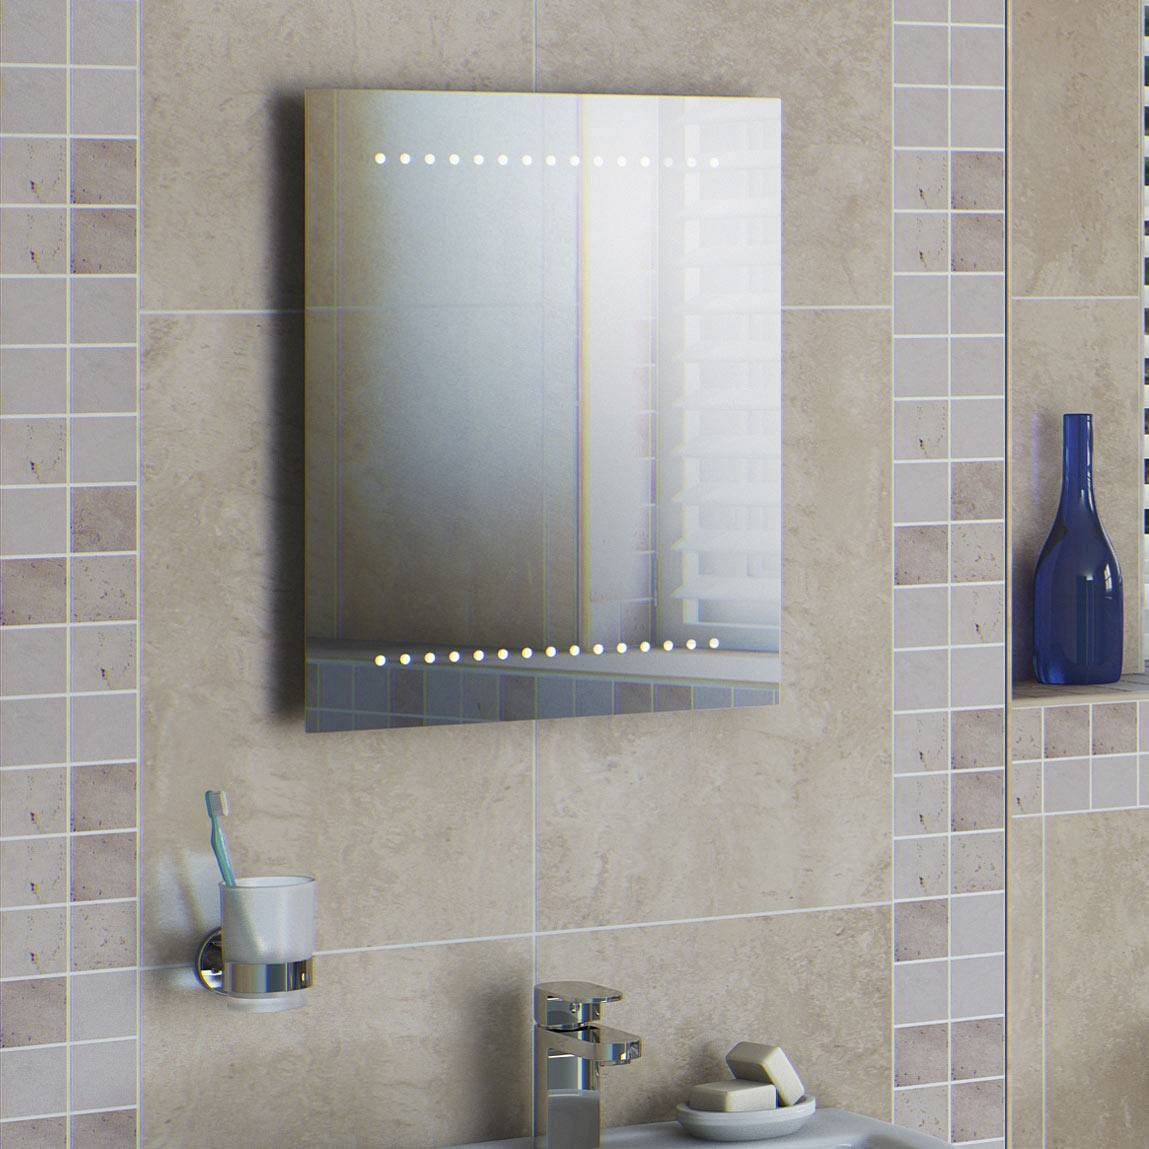 Led battery bathroom mirrors - Battery Bathroom Mirror Free Delivery Orion Led Battery Mirror Click To Zoom Download